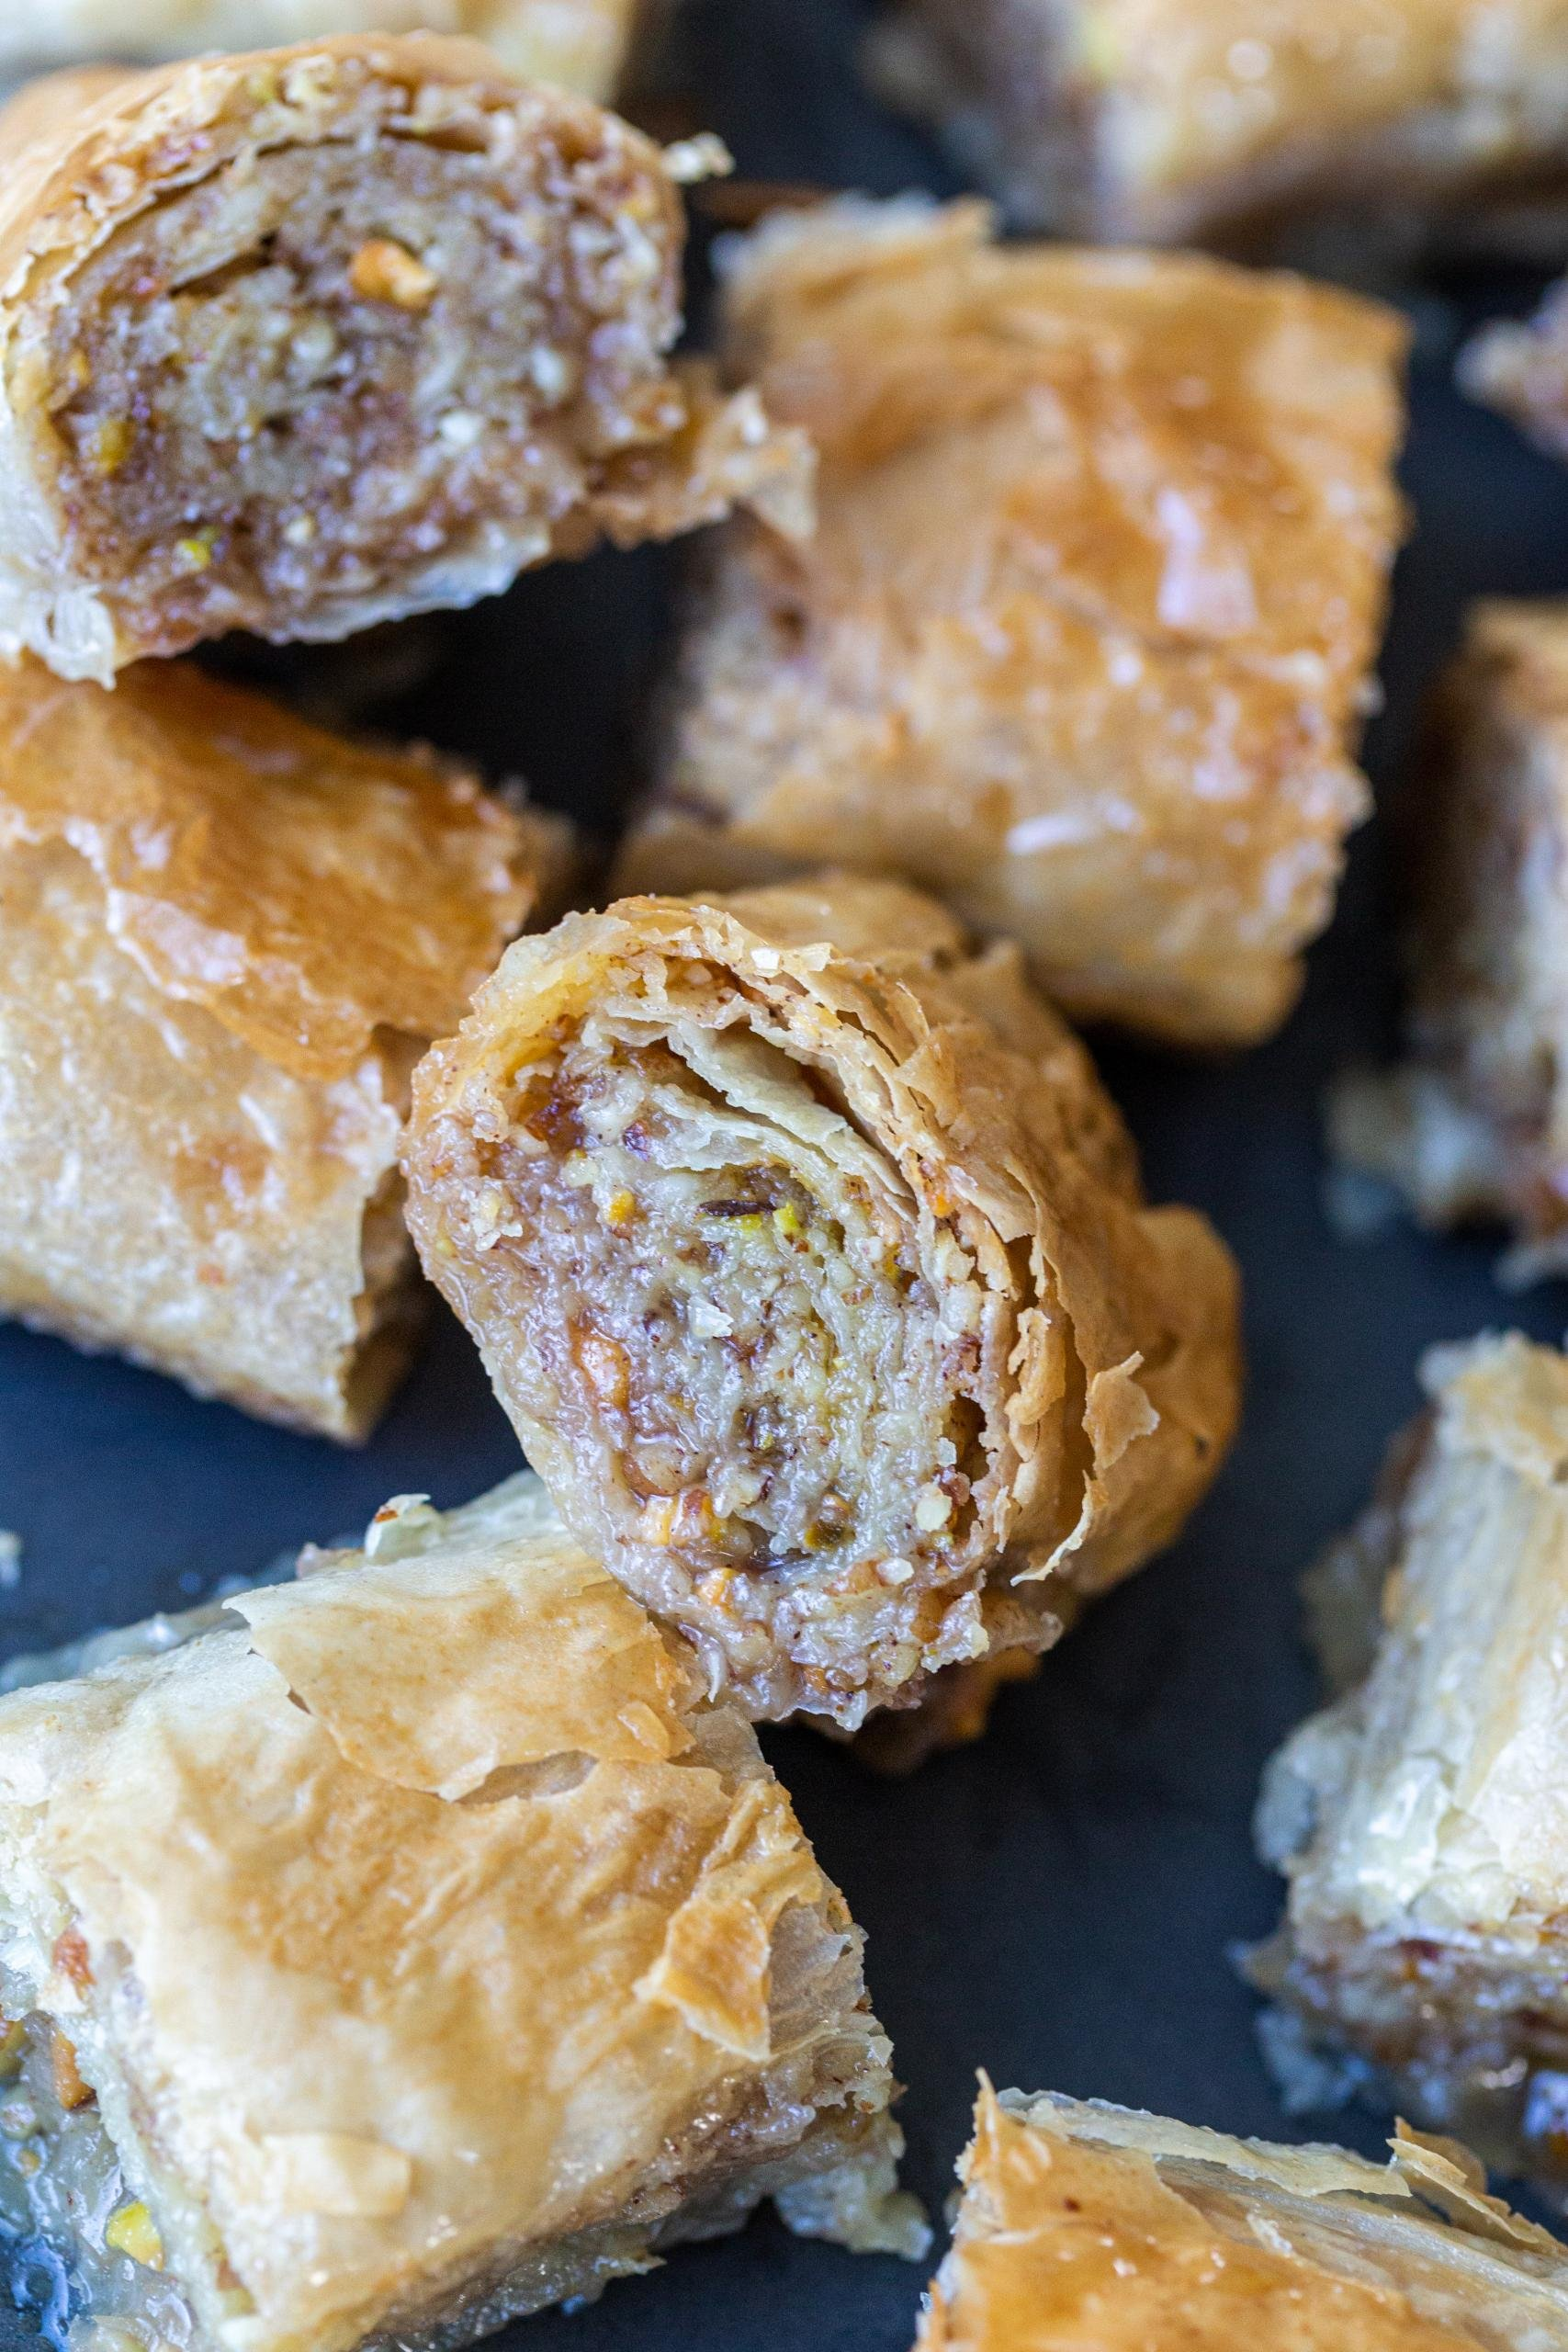 Baklava rolls on a plate